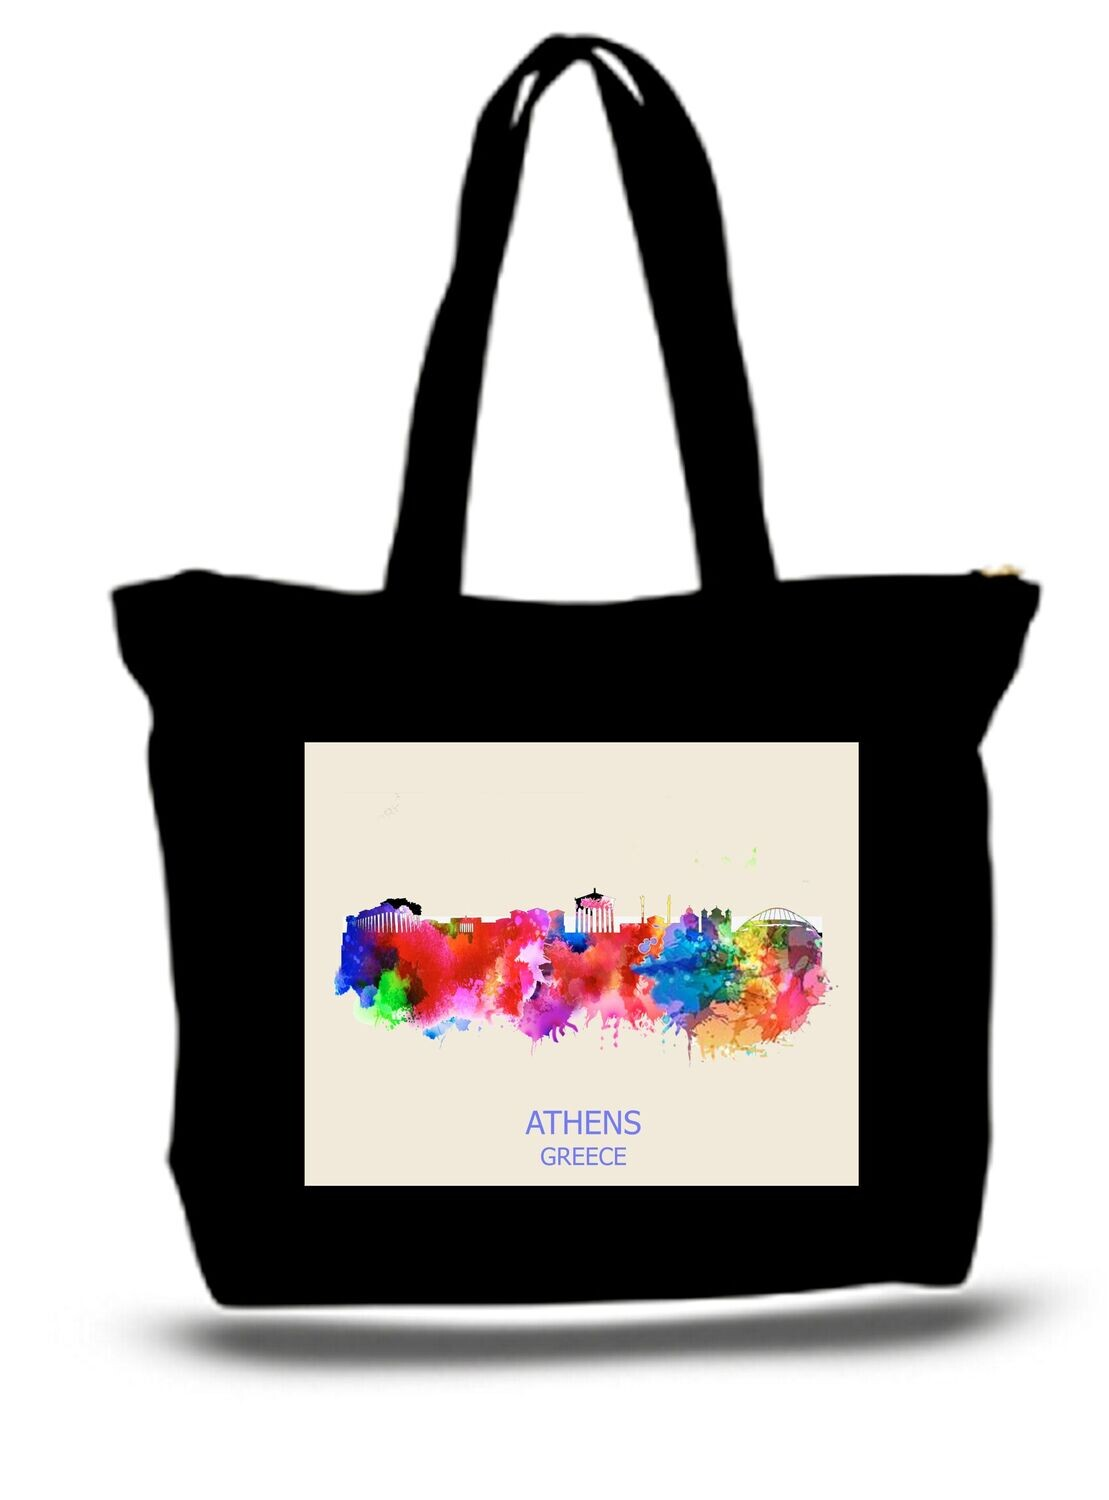 ATHENS GREECE XL TOTE BAG ALL PURPOSE GEAR STUFF Hold 50 Lbs